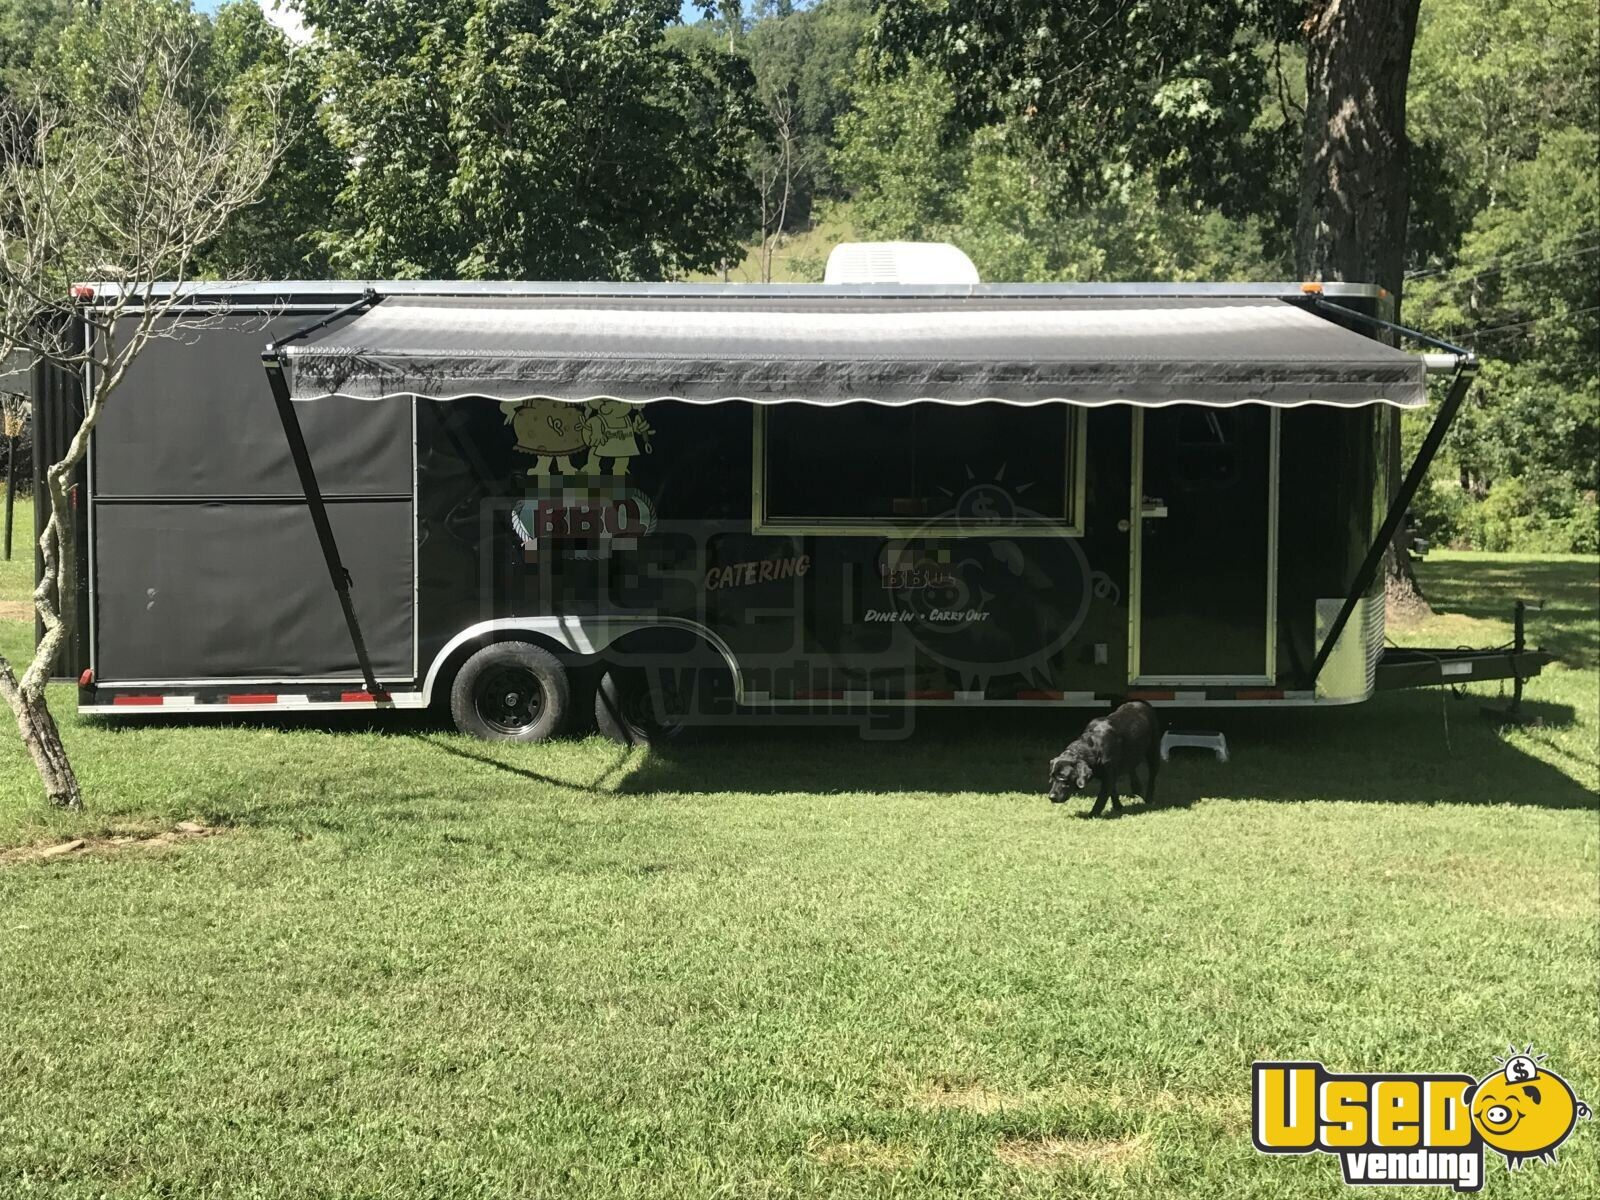 2013 Colonial Custom Built Barbecue Food Trailer Concession Window North Carolina for Sale - 3